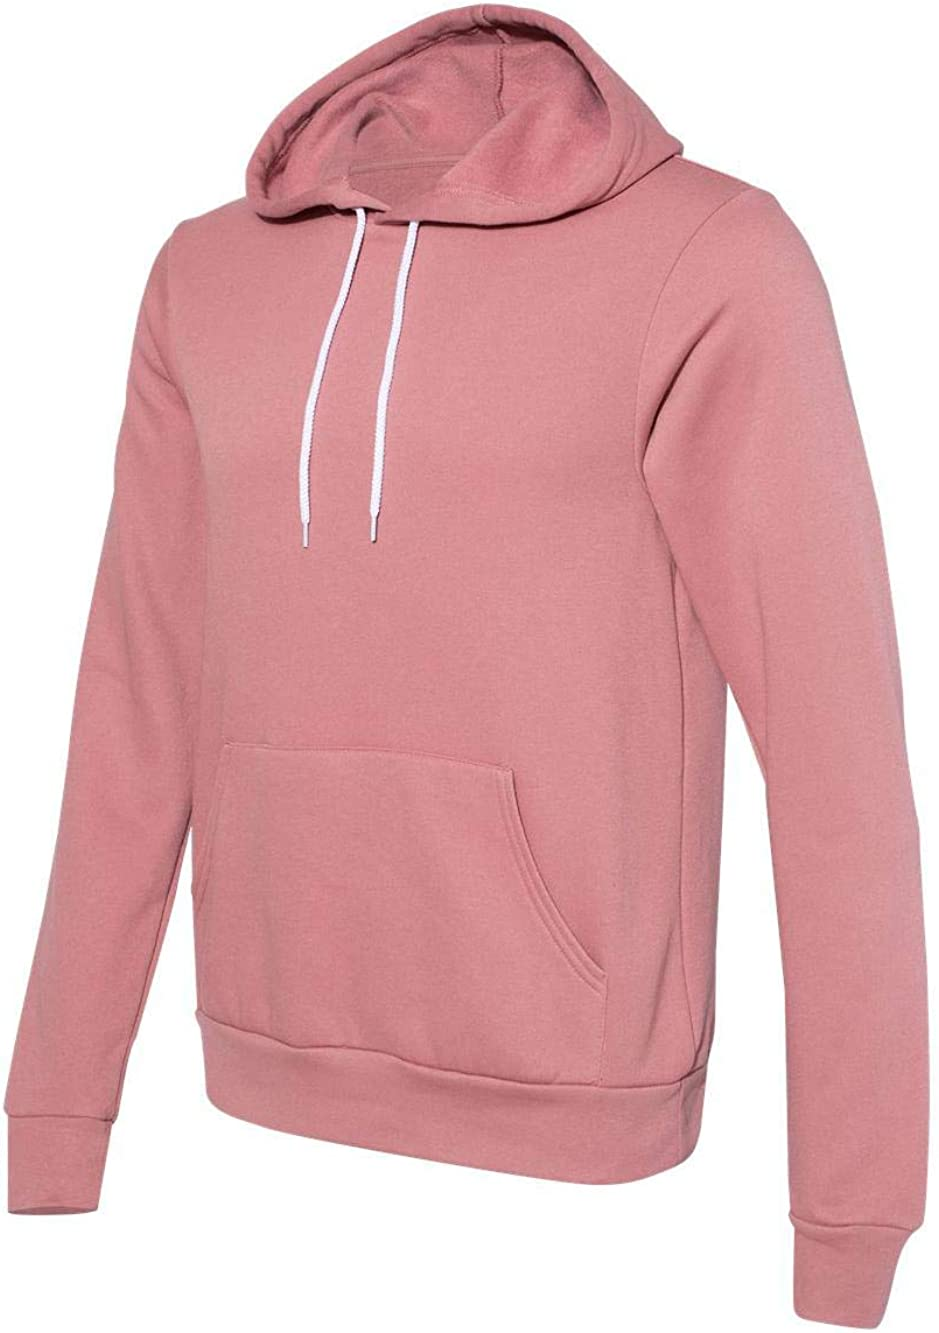 Bella Max Sales of SALE items from new works 87% OFF + Canvas Unisex Poly-Cotton Pullover Sweatsh Fleece Hoodie